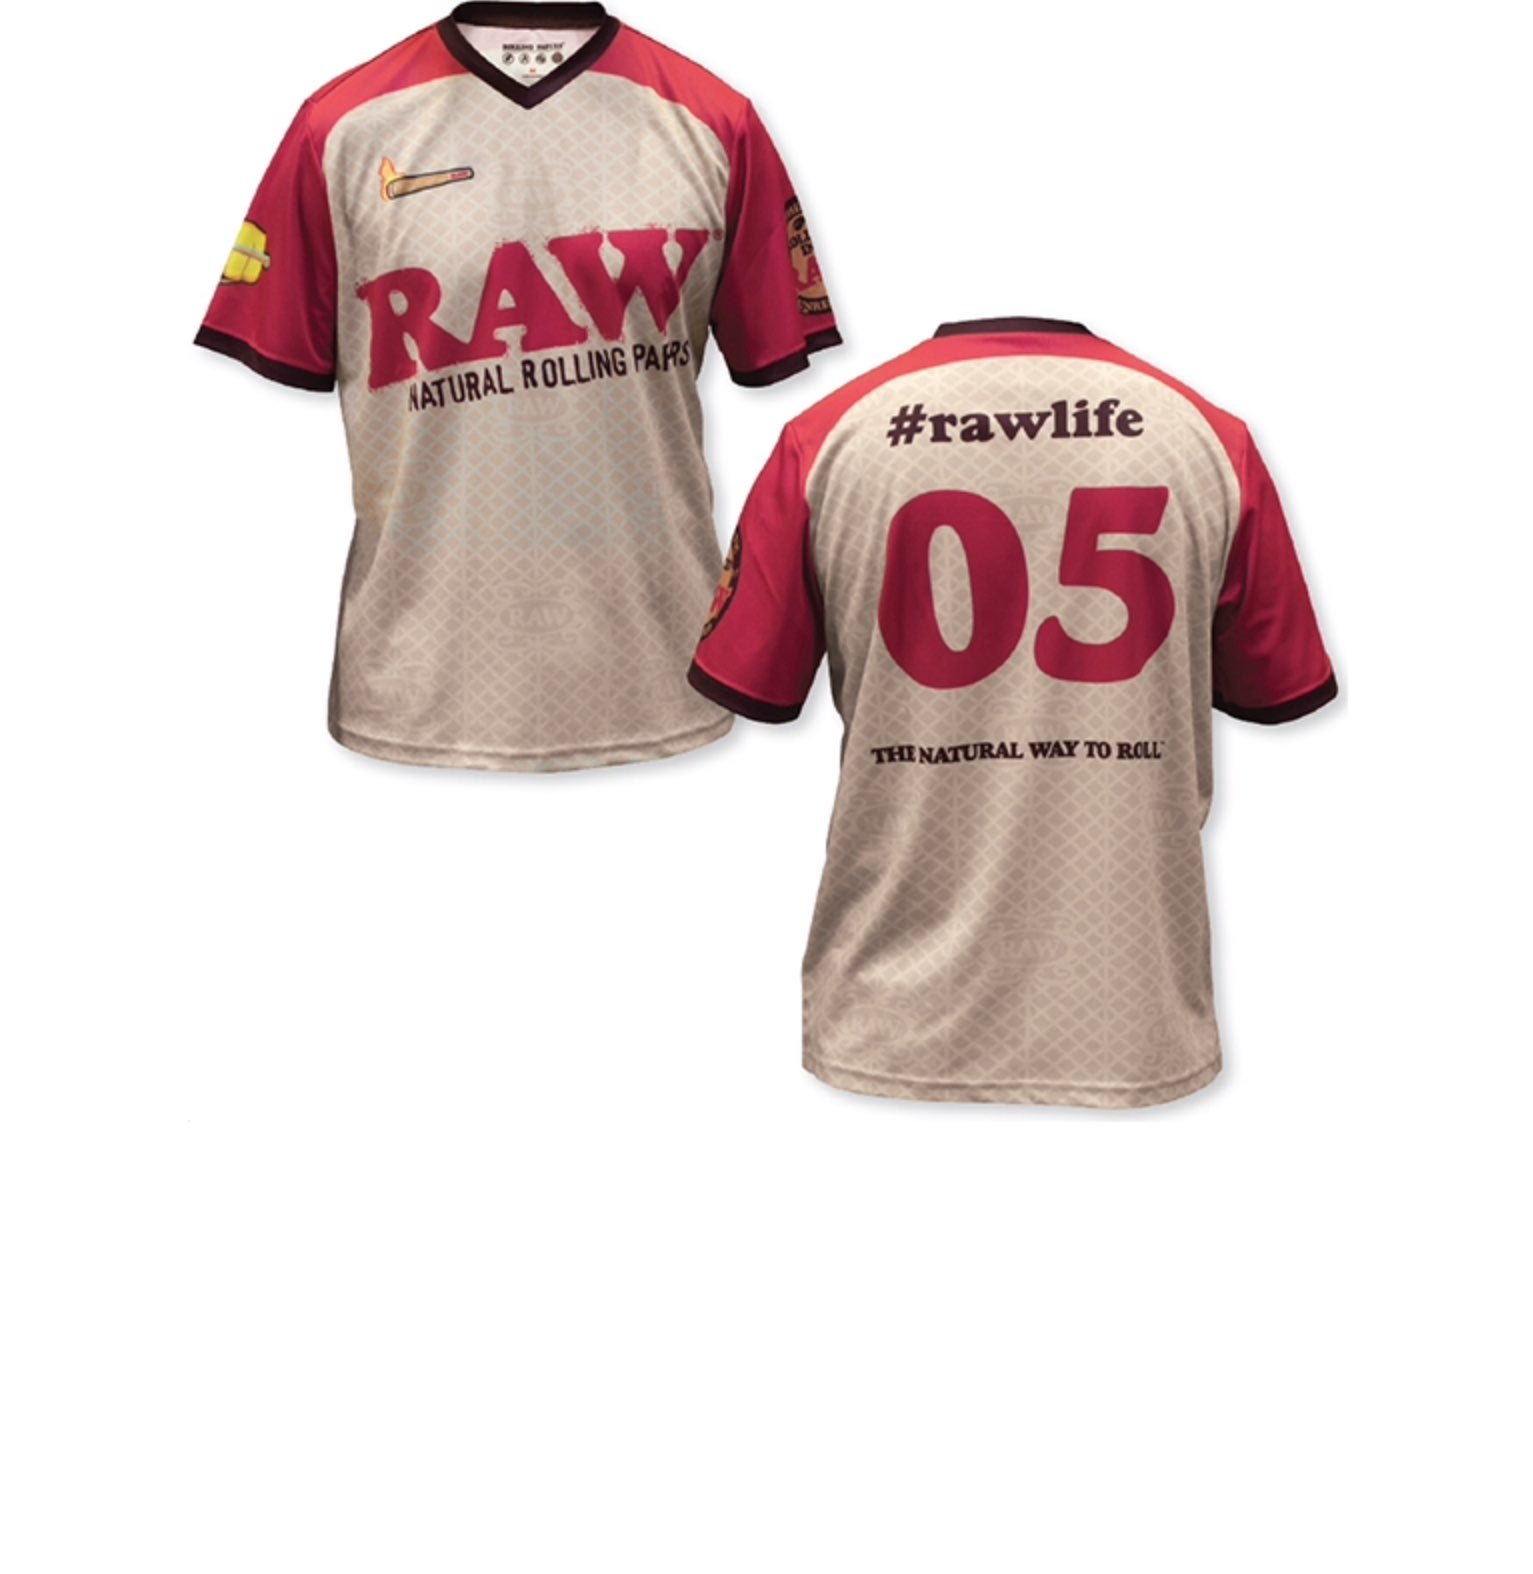 Large RAW Authentic Soccer Jersey